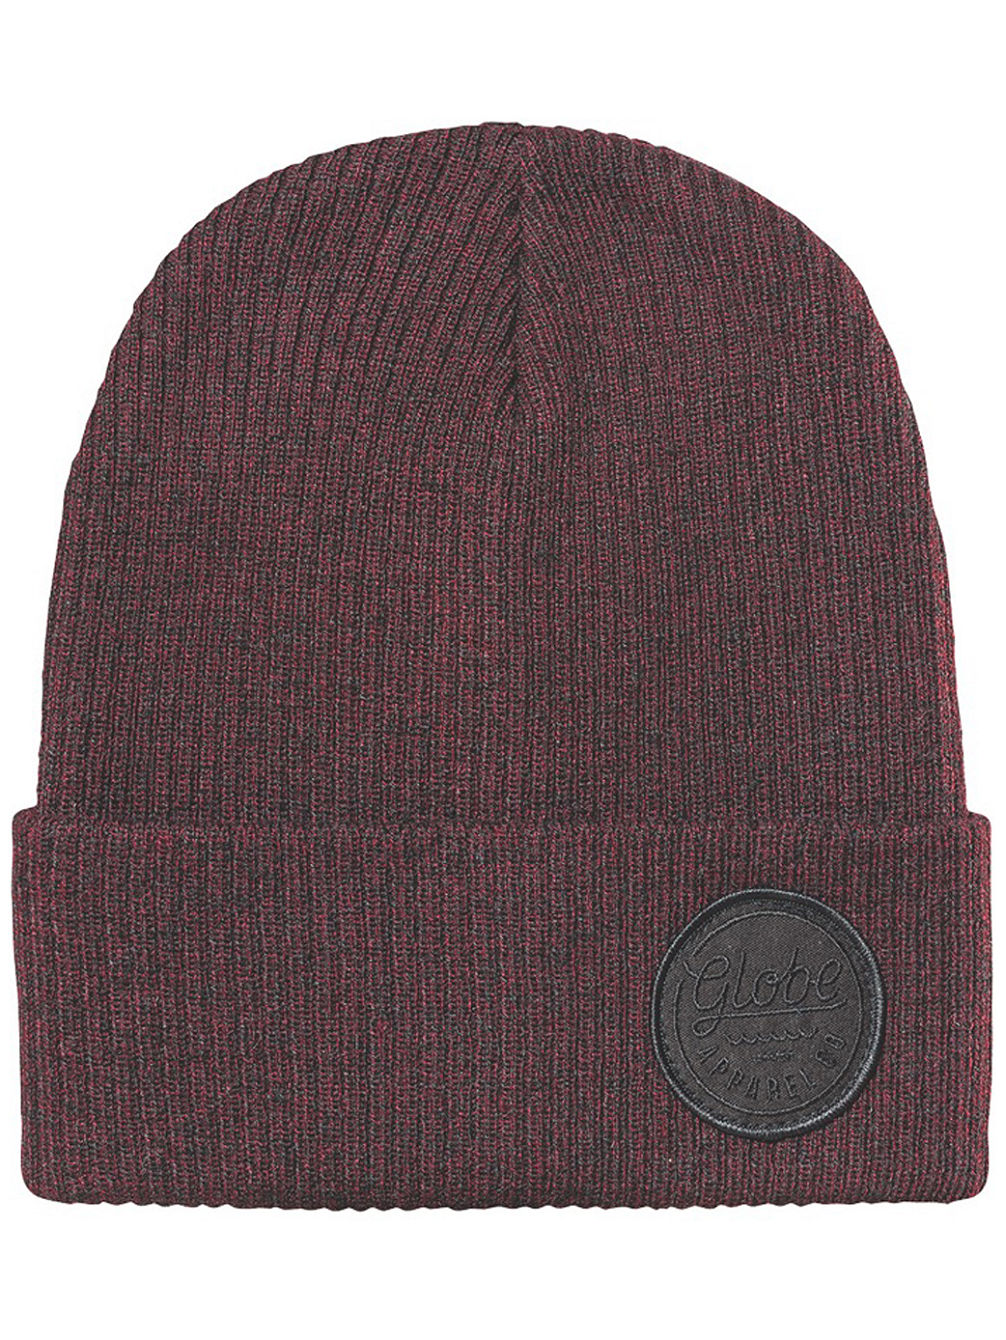 expedition-beanie